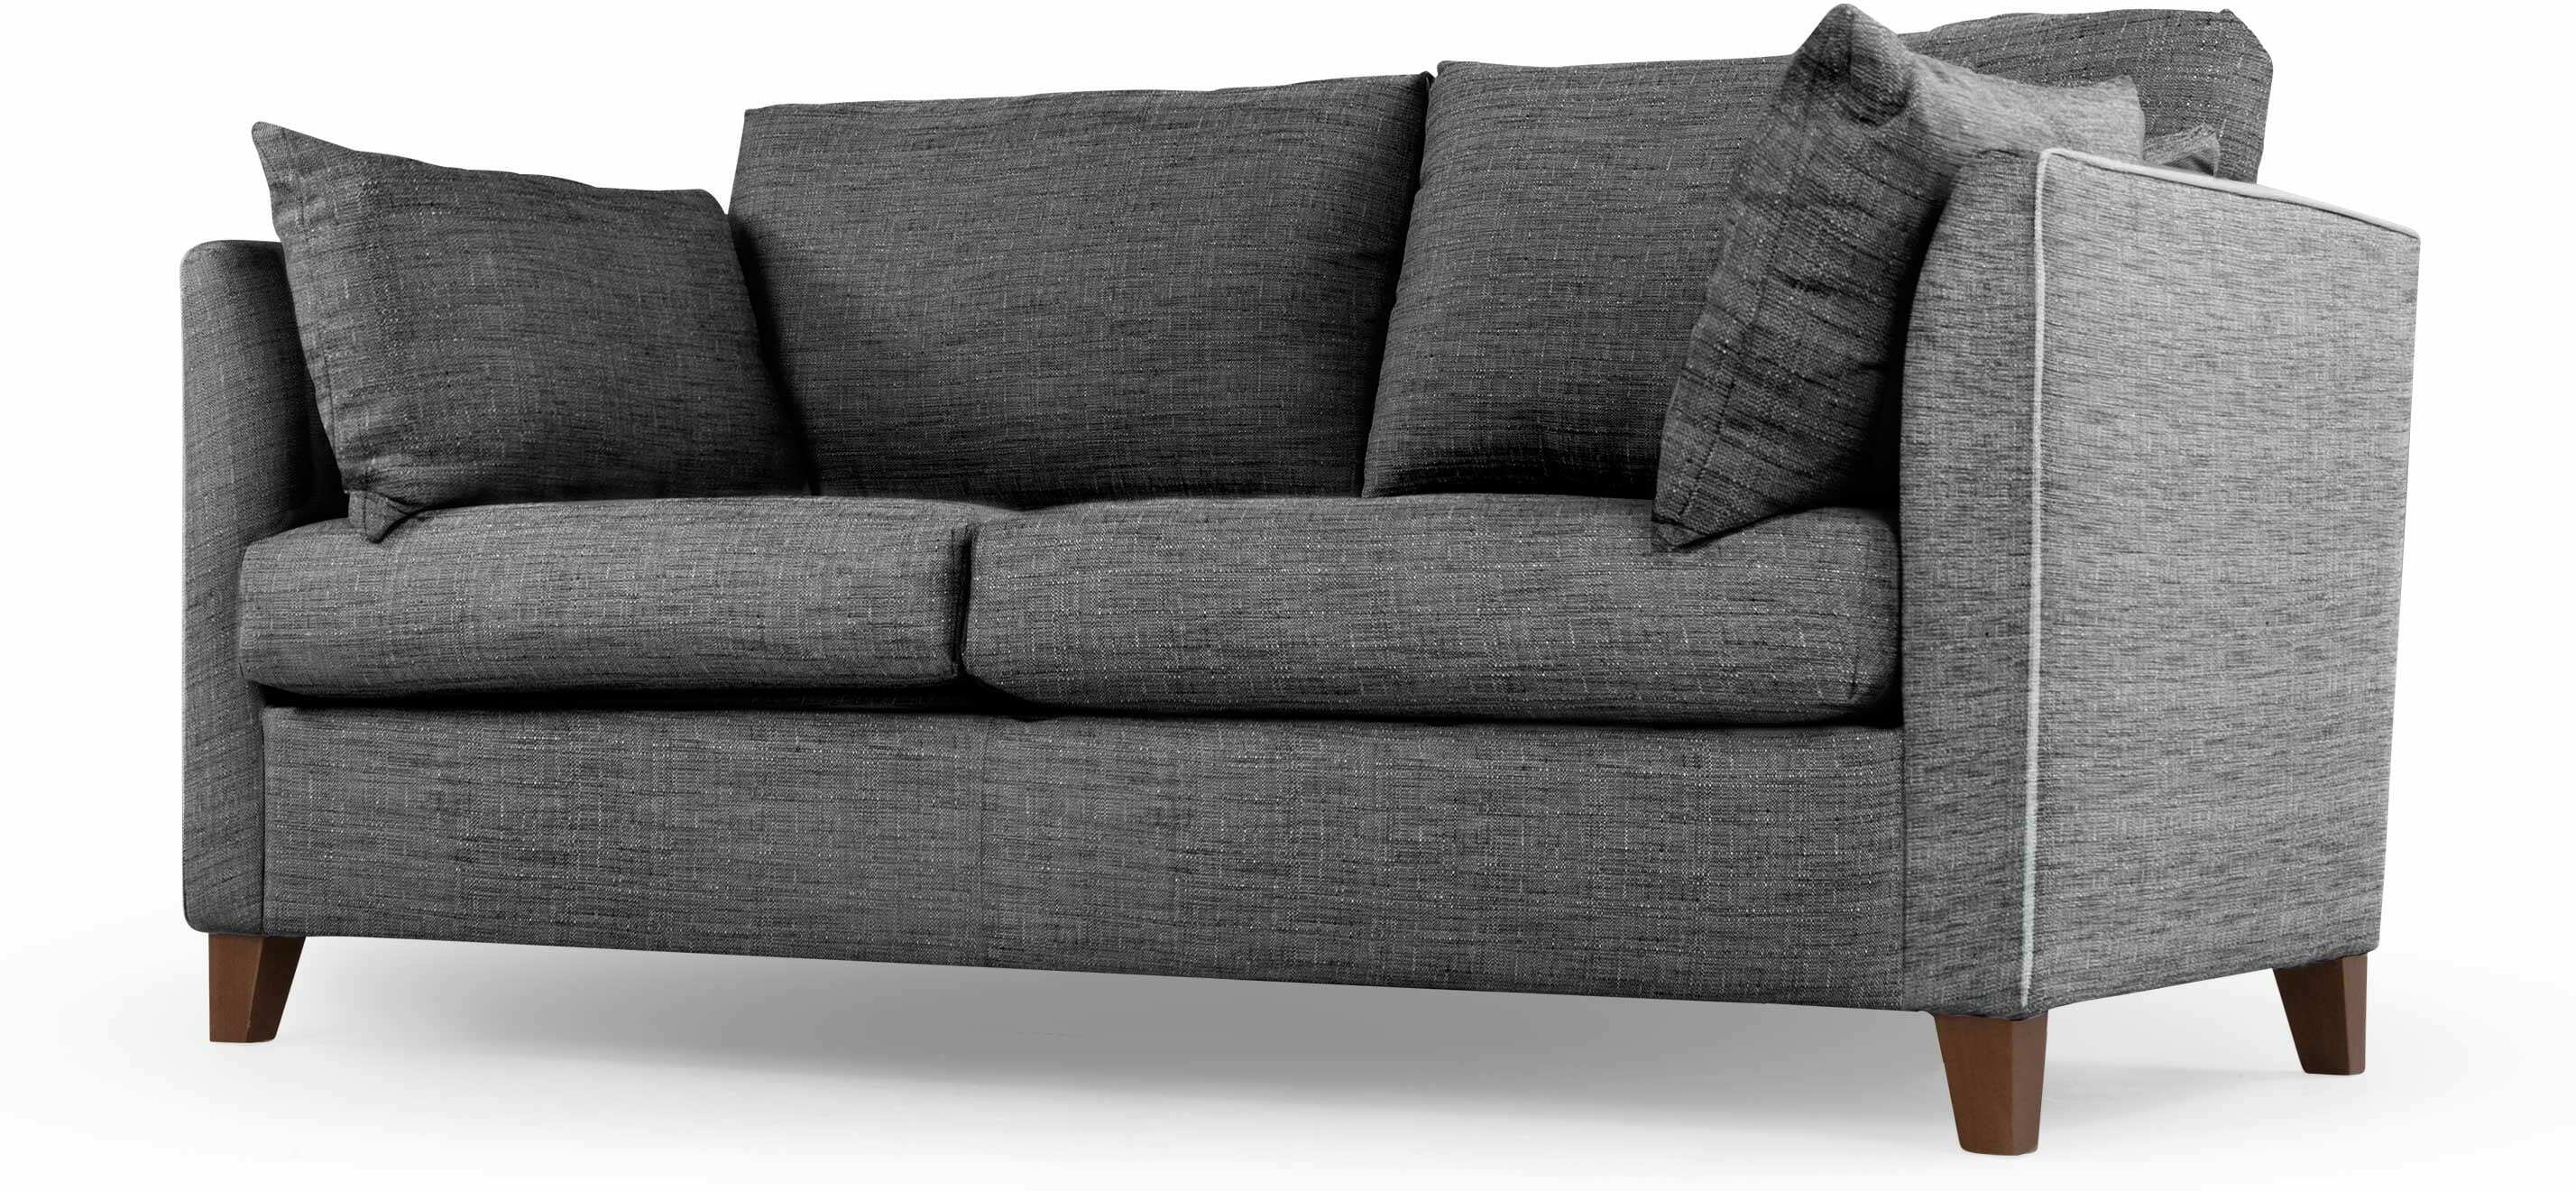 Buy Cheap Memory Foam Sofa Bed Compare Sofas Prices For